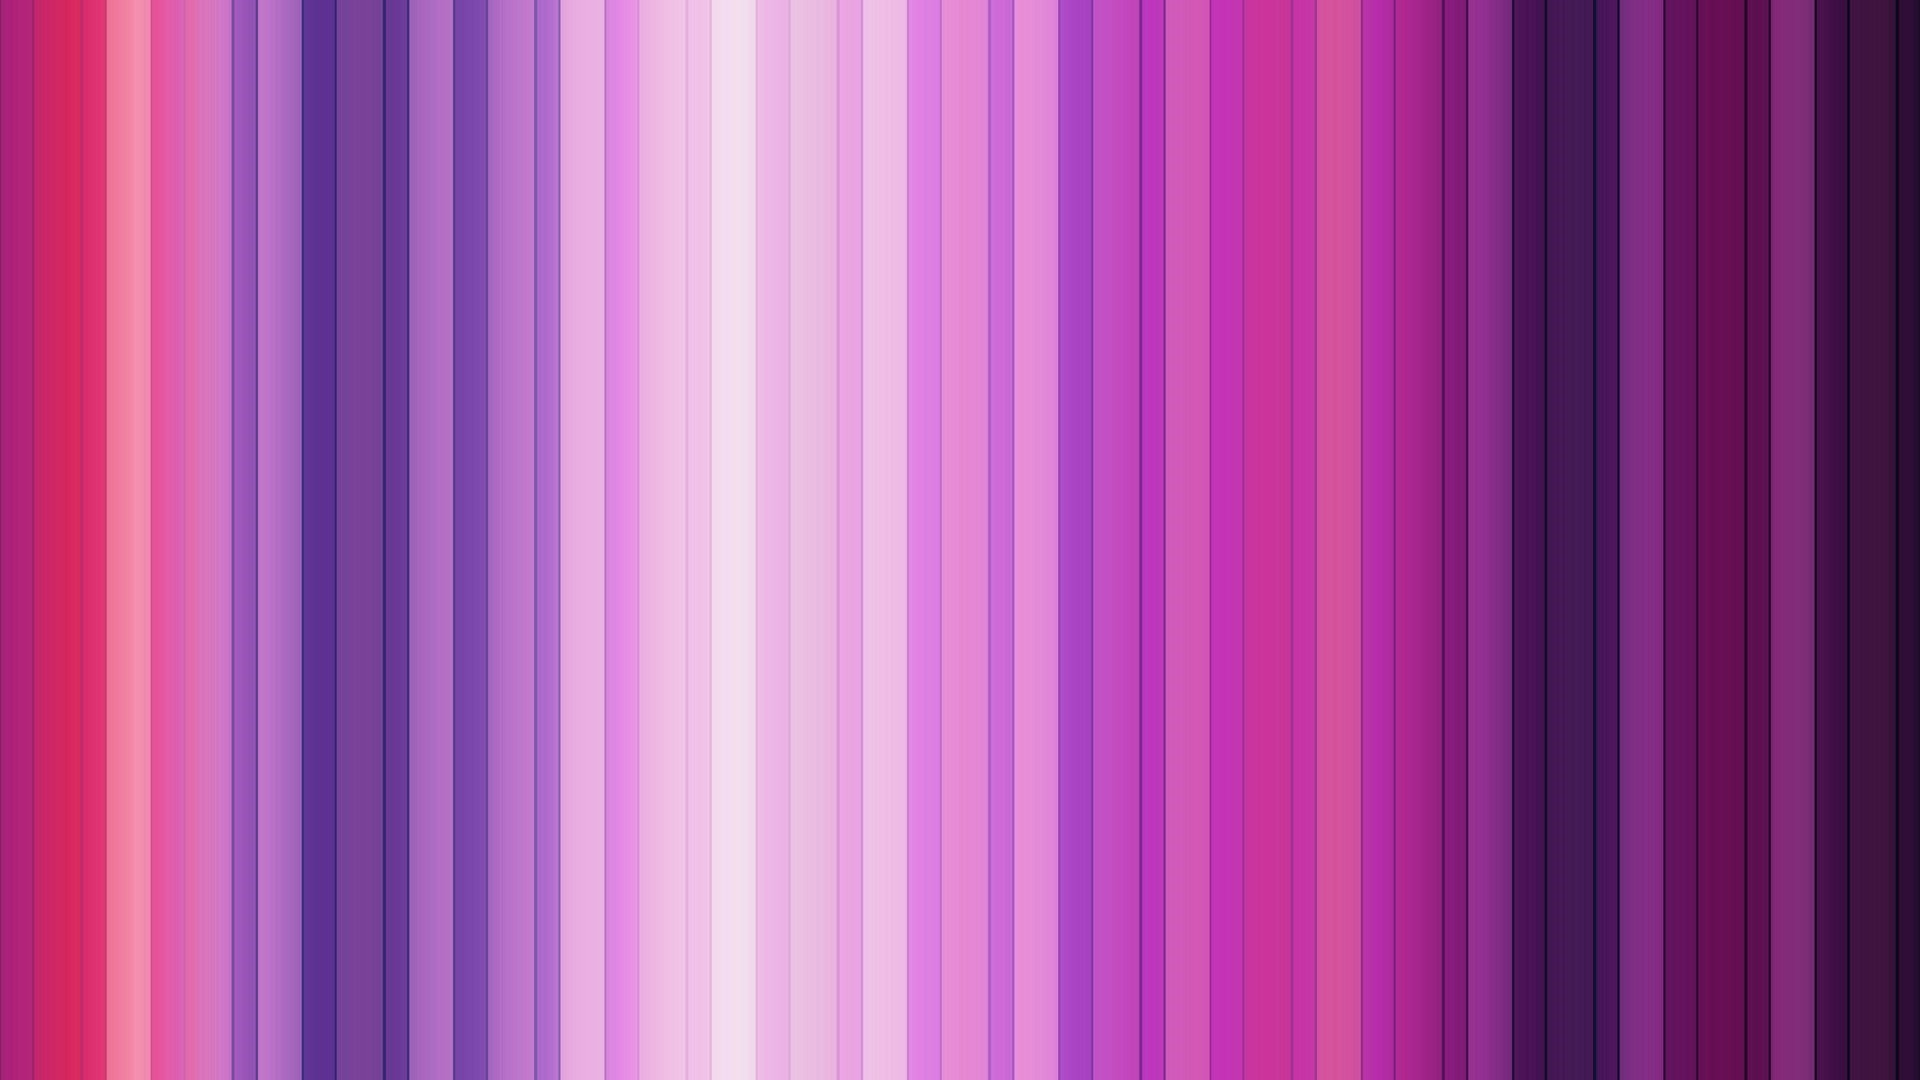 Pink And Purple Full HD Wallpaper